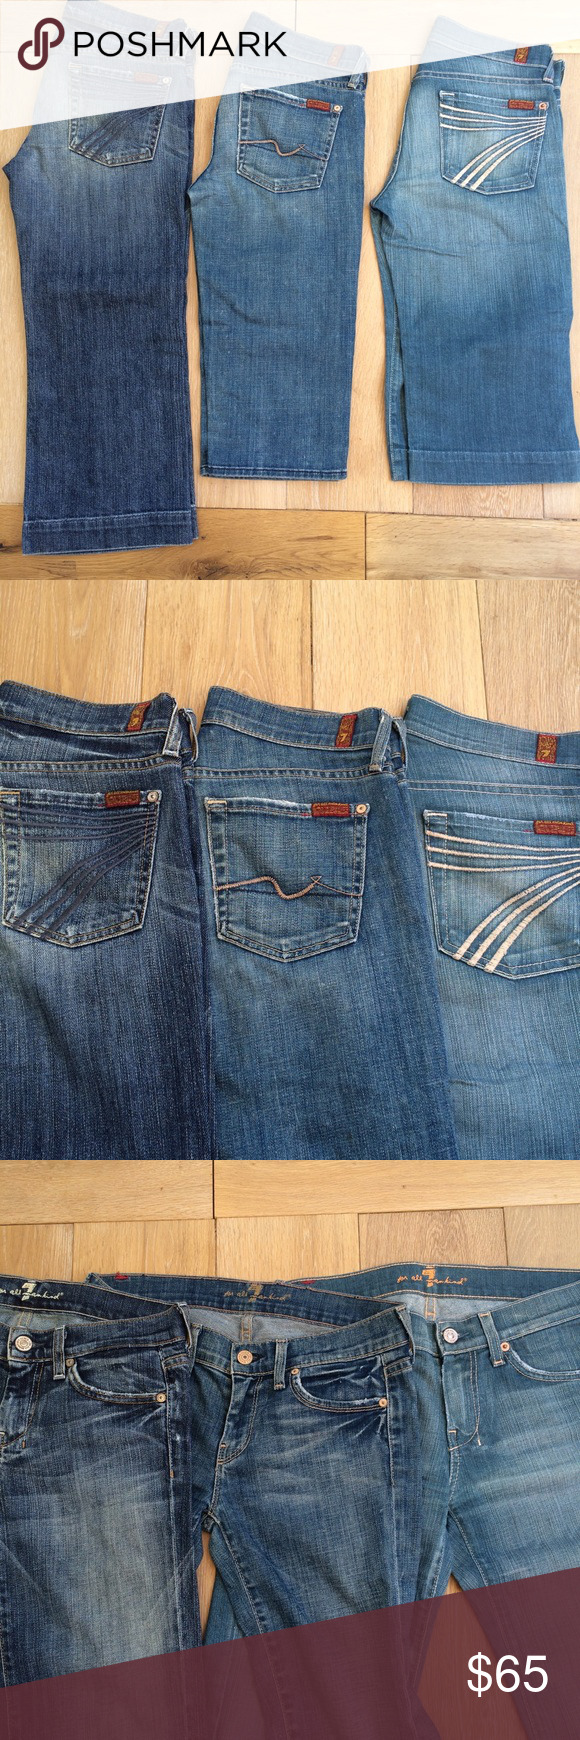 "7FAM Crop Bundle Long one approx 20"" inseam. Other two approx. 15"" inseam. 7 For All Mankind Jeans Ankle & Cropped"